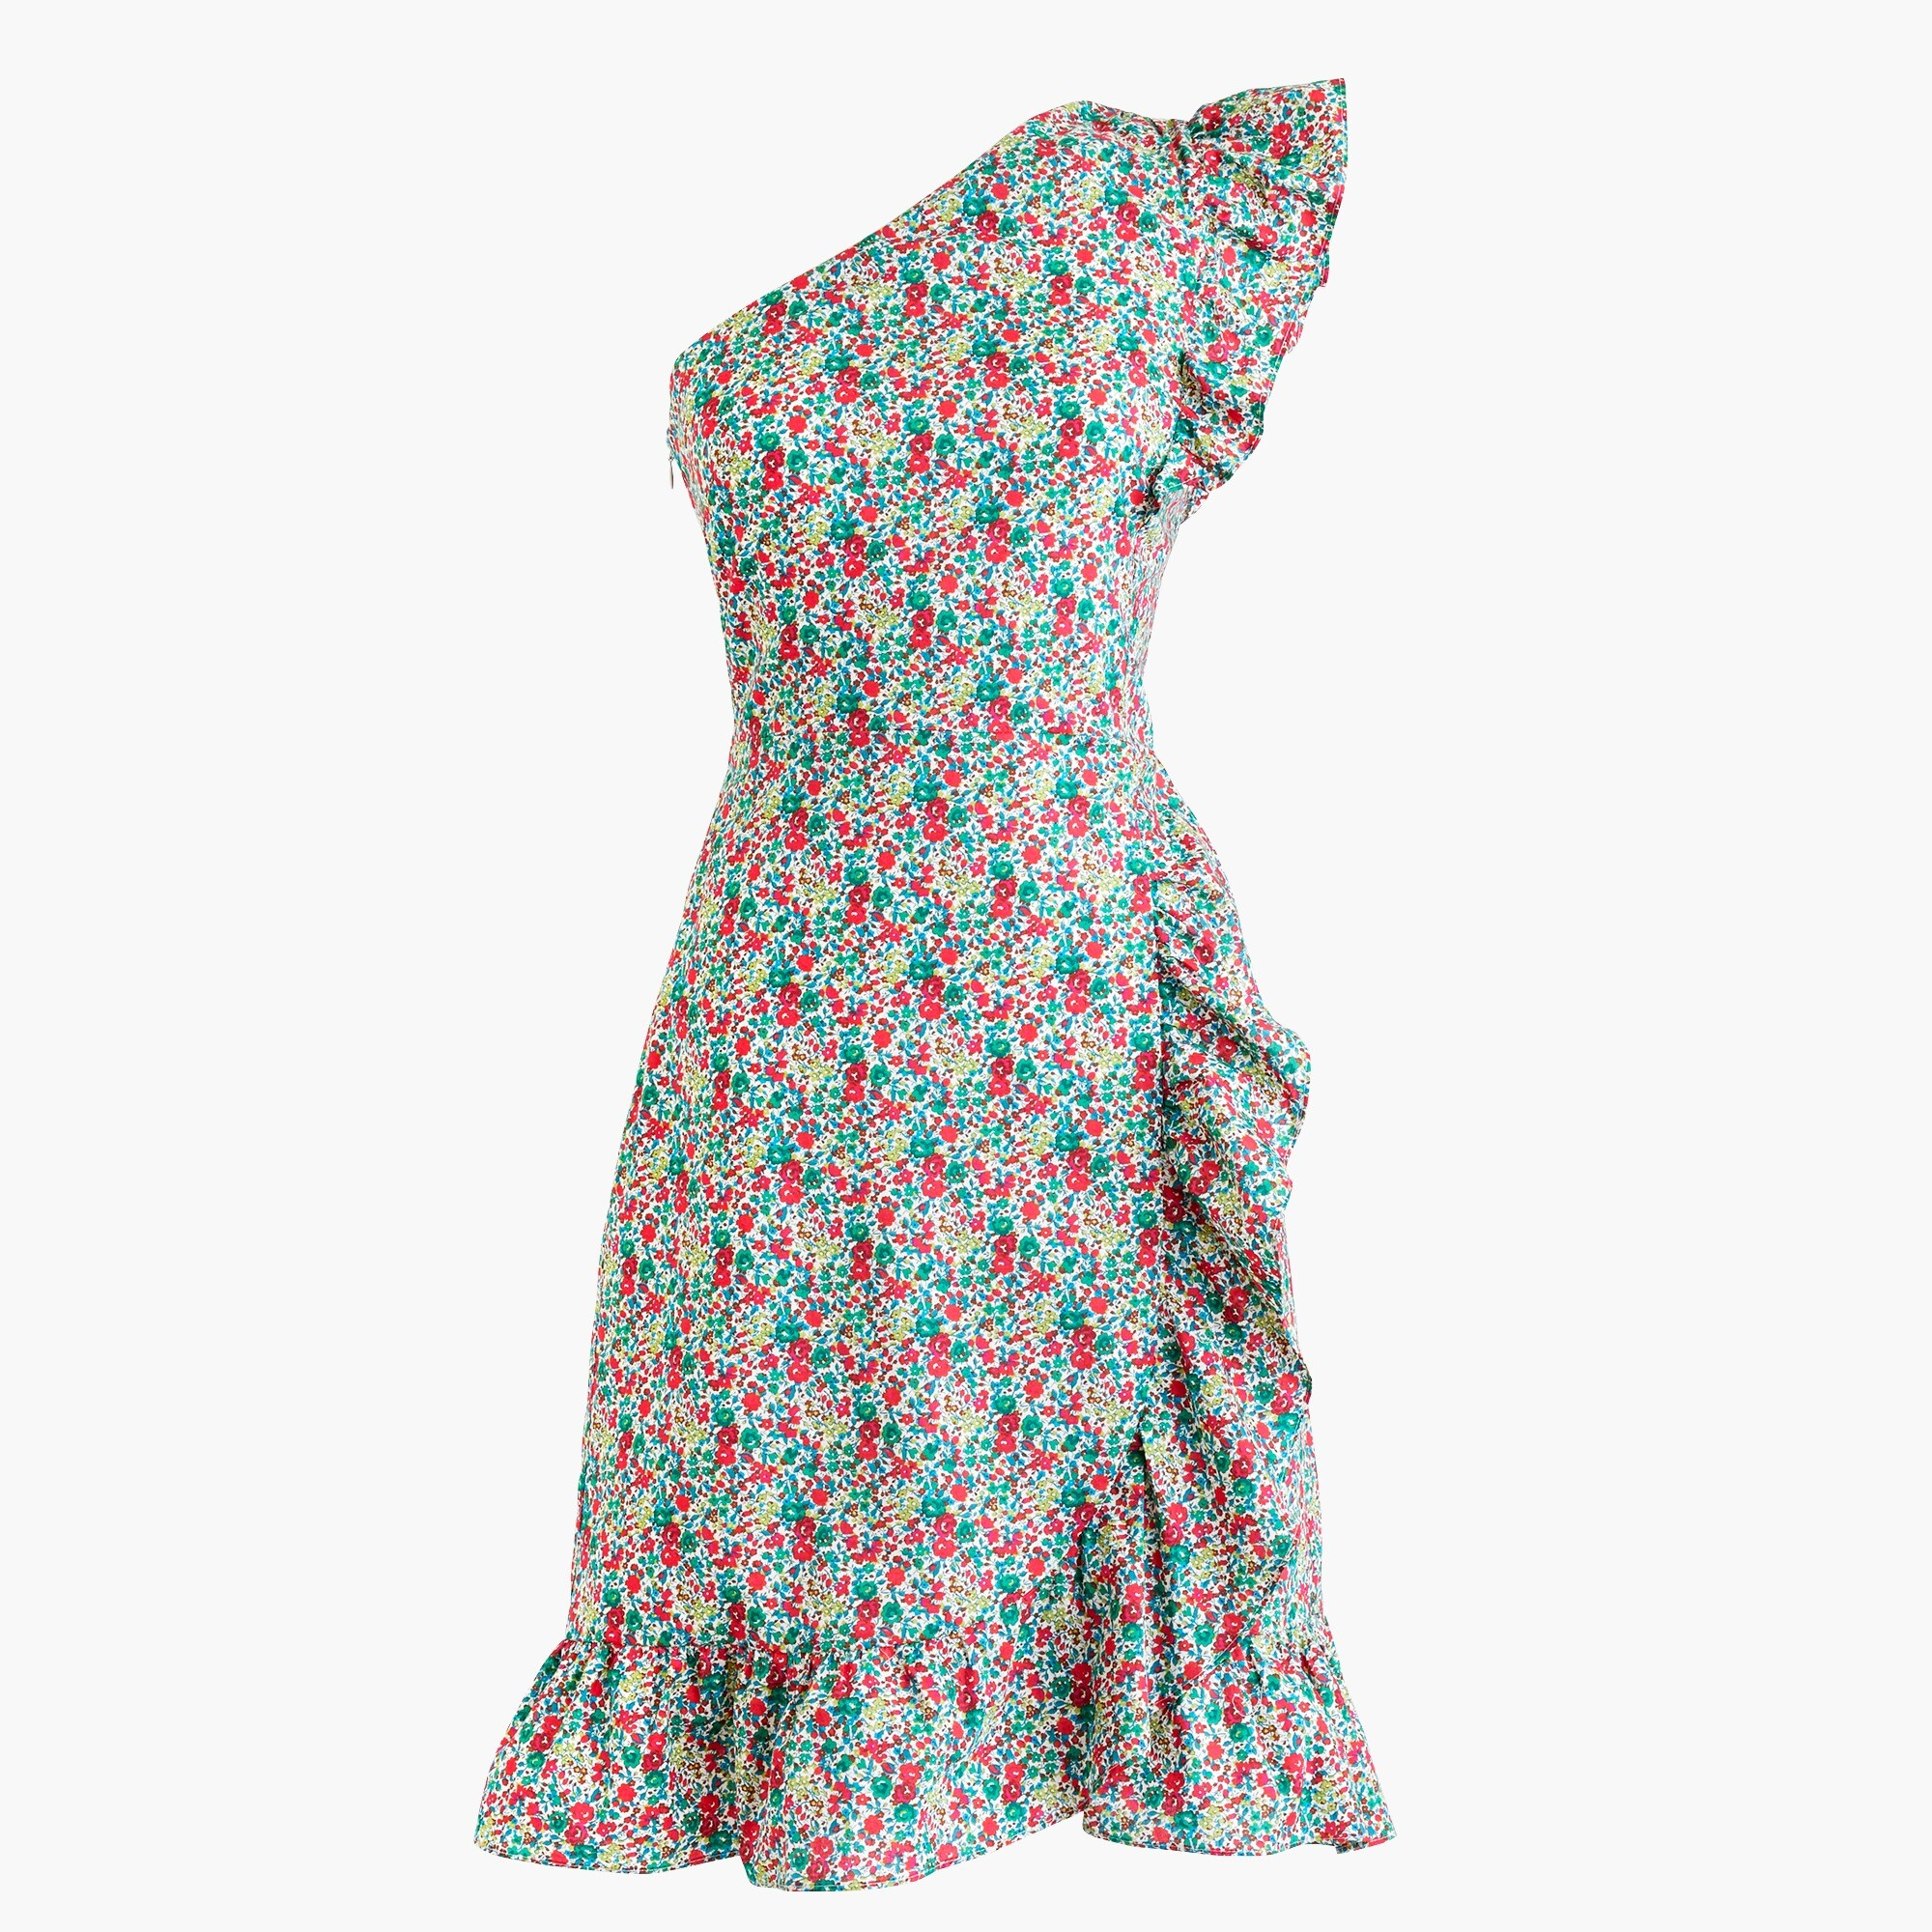 Image 5 for Petite asymmetrical ruffle dress in Liberty® Emma & Georgina floral